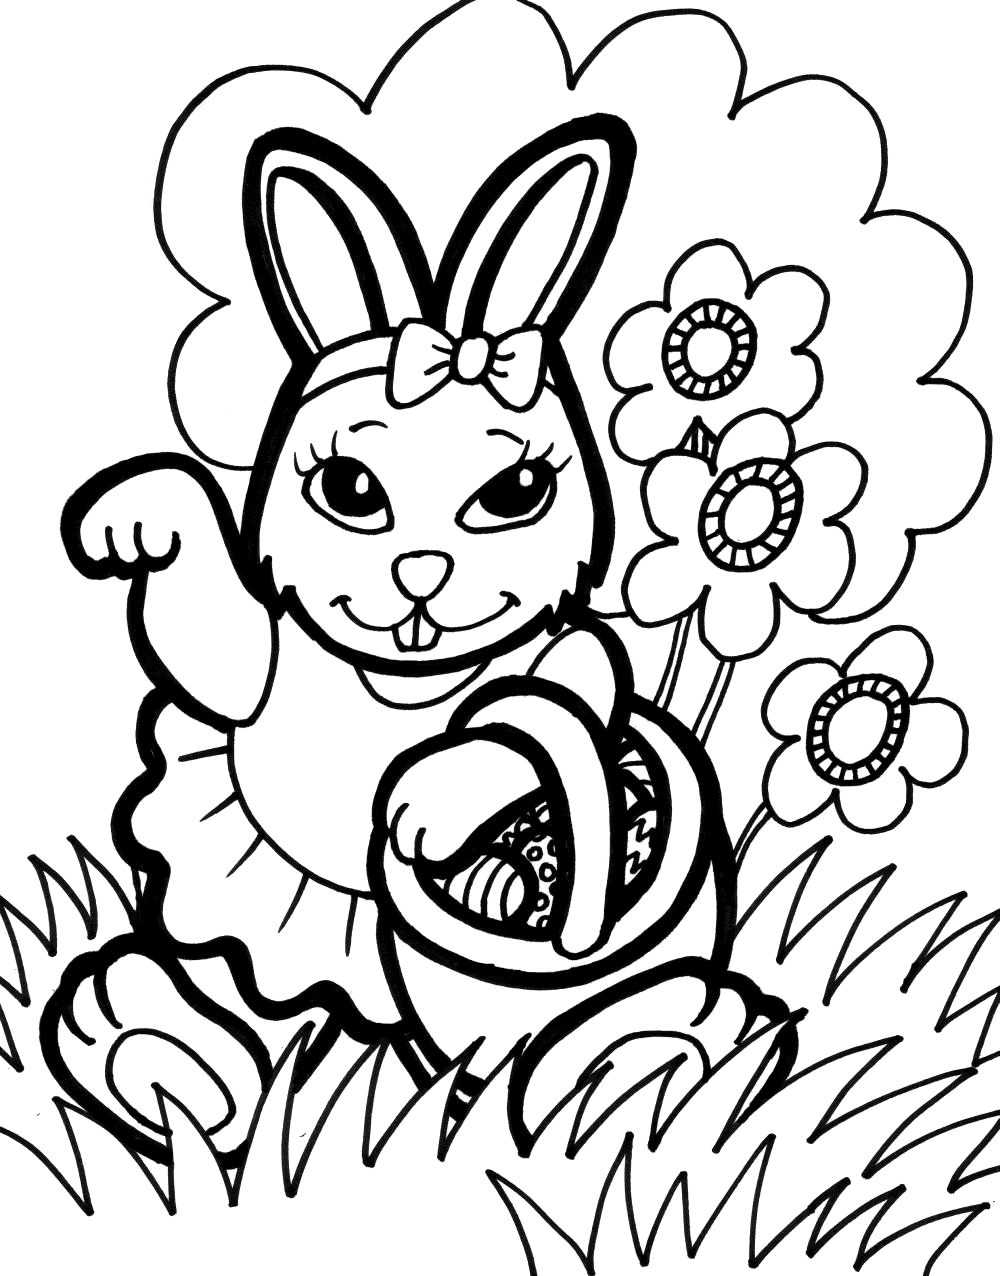 best colouring pages to print printable zebra coloring pages best coloring pages pages best print to colouring